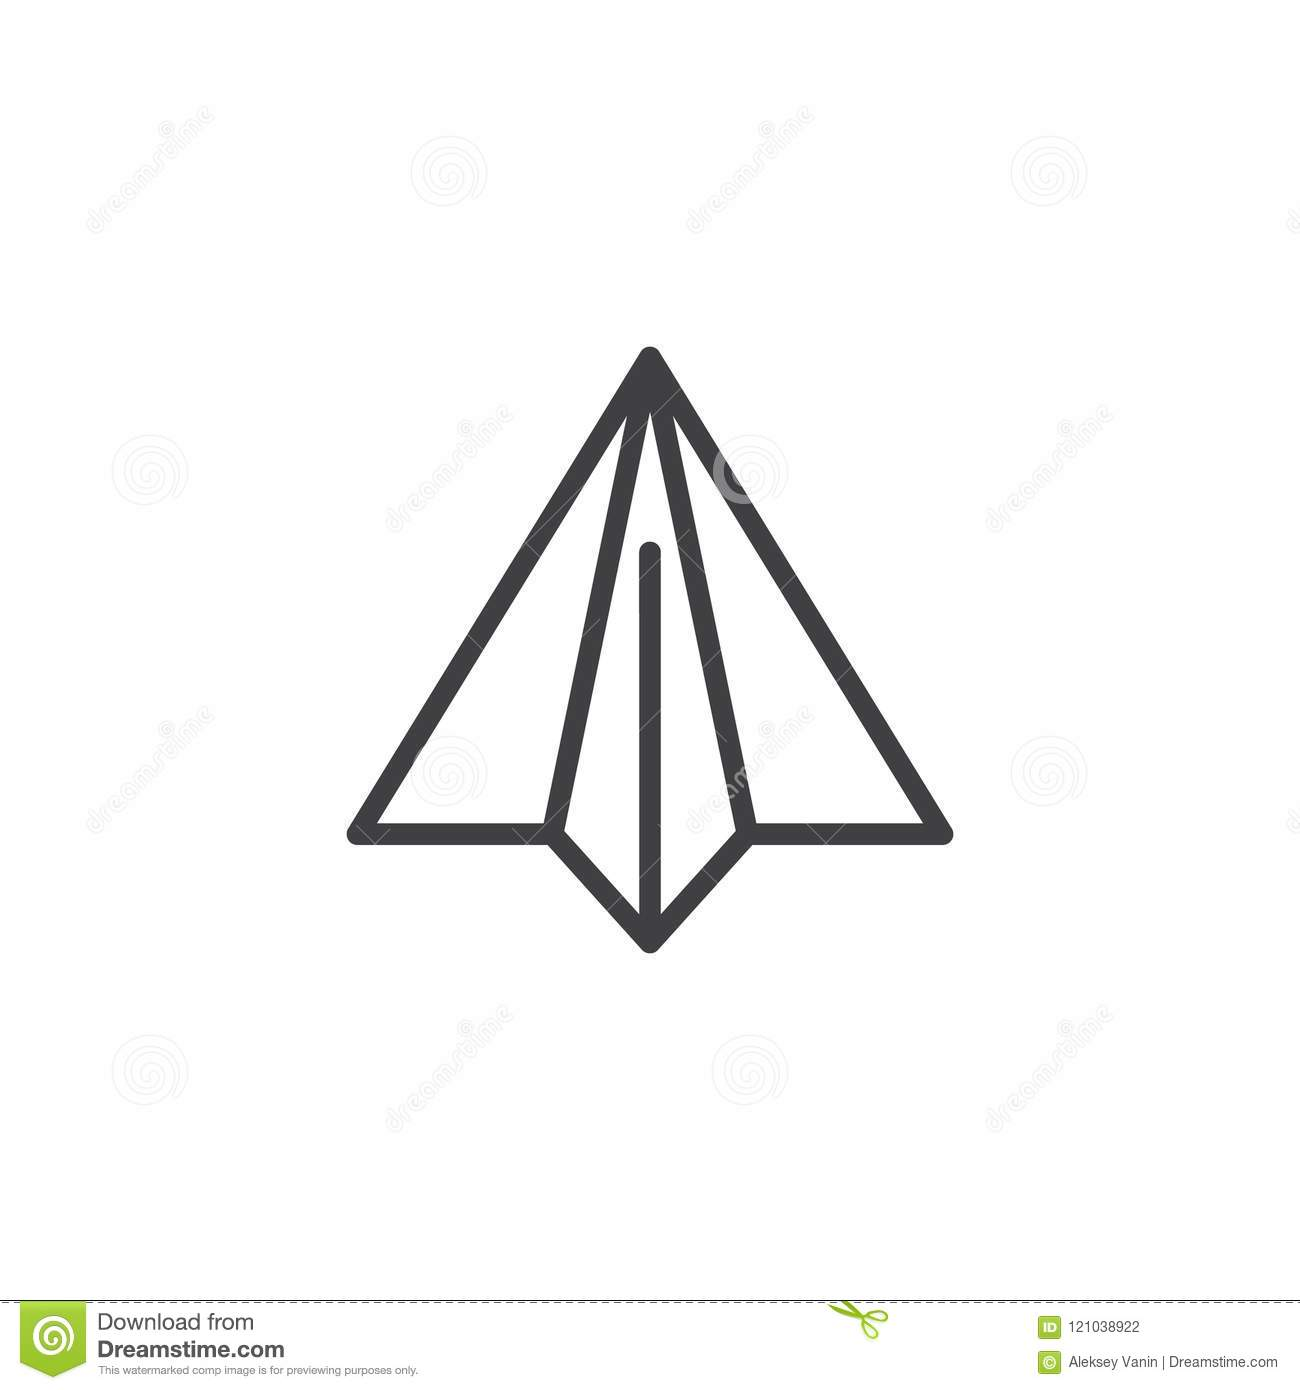 Paper Plane Outline Icon Stock Vector Illustration Of Airplane